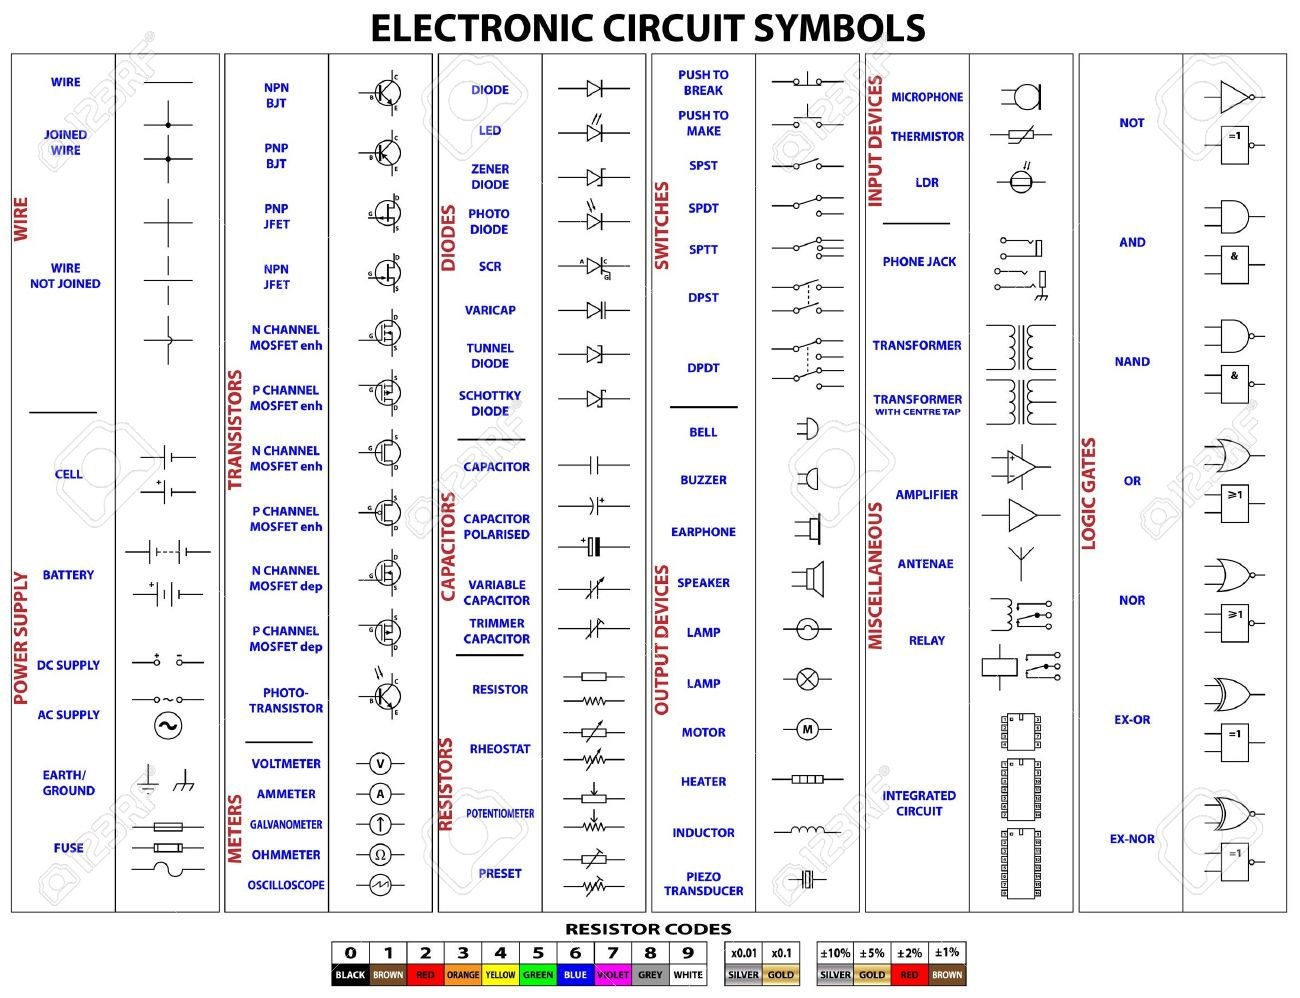 Complete set of electronic circuit symbols and resistor codes - 15193348